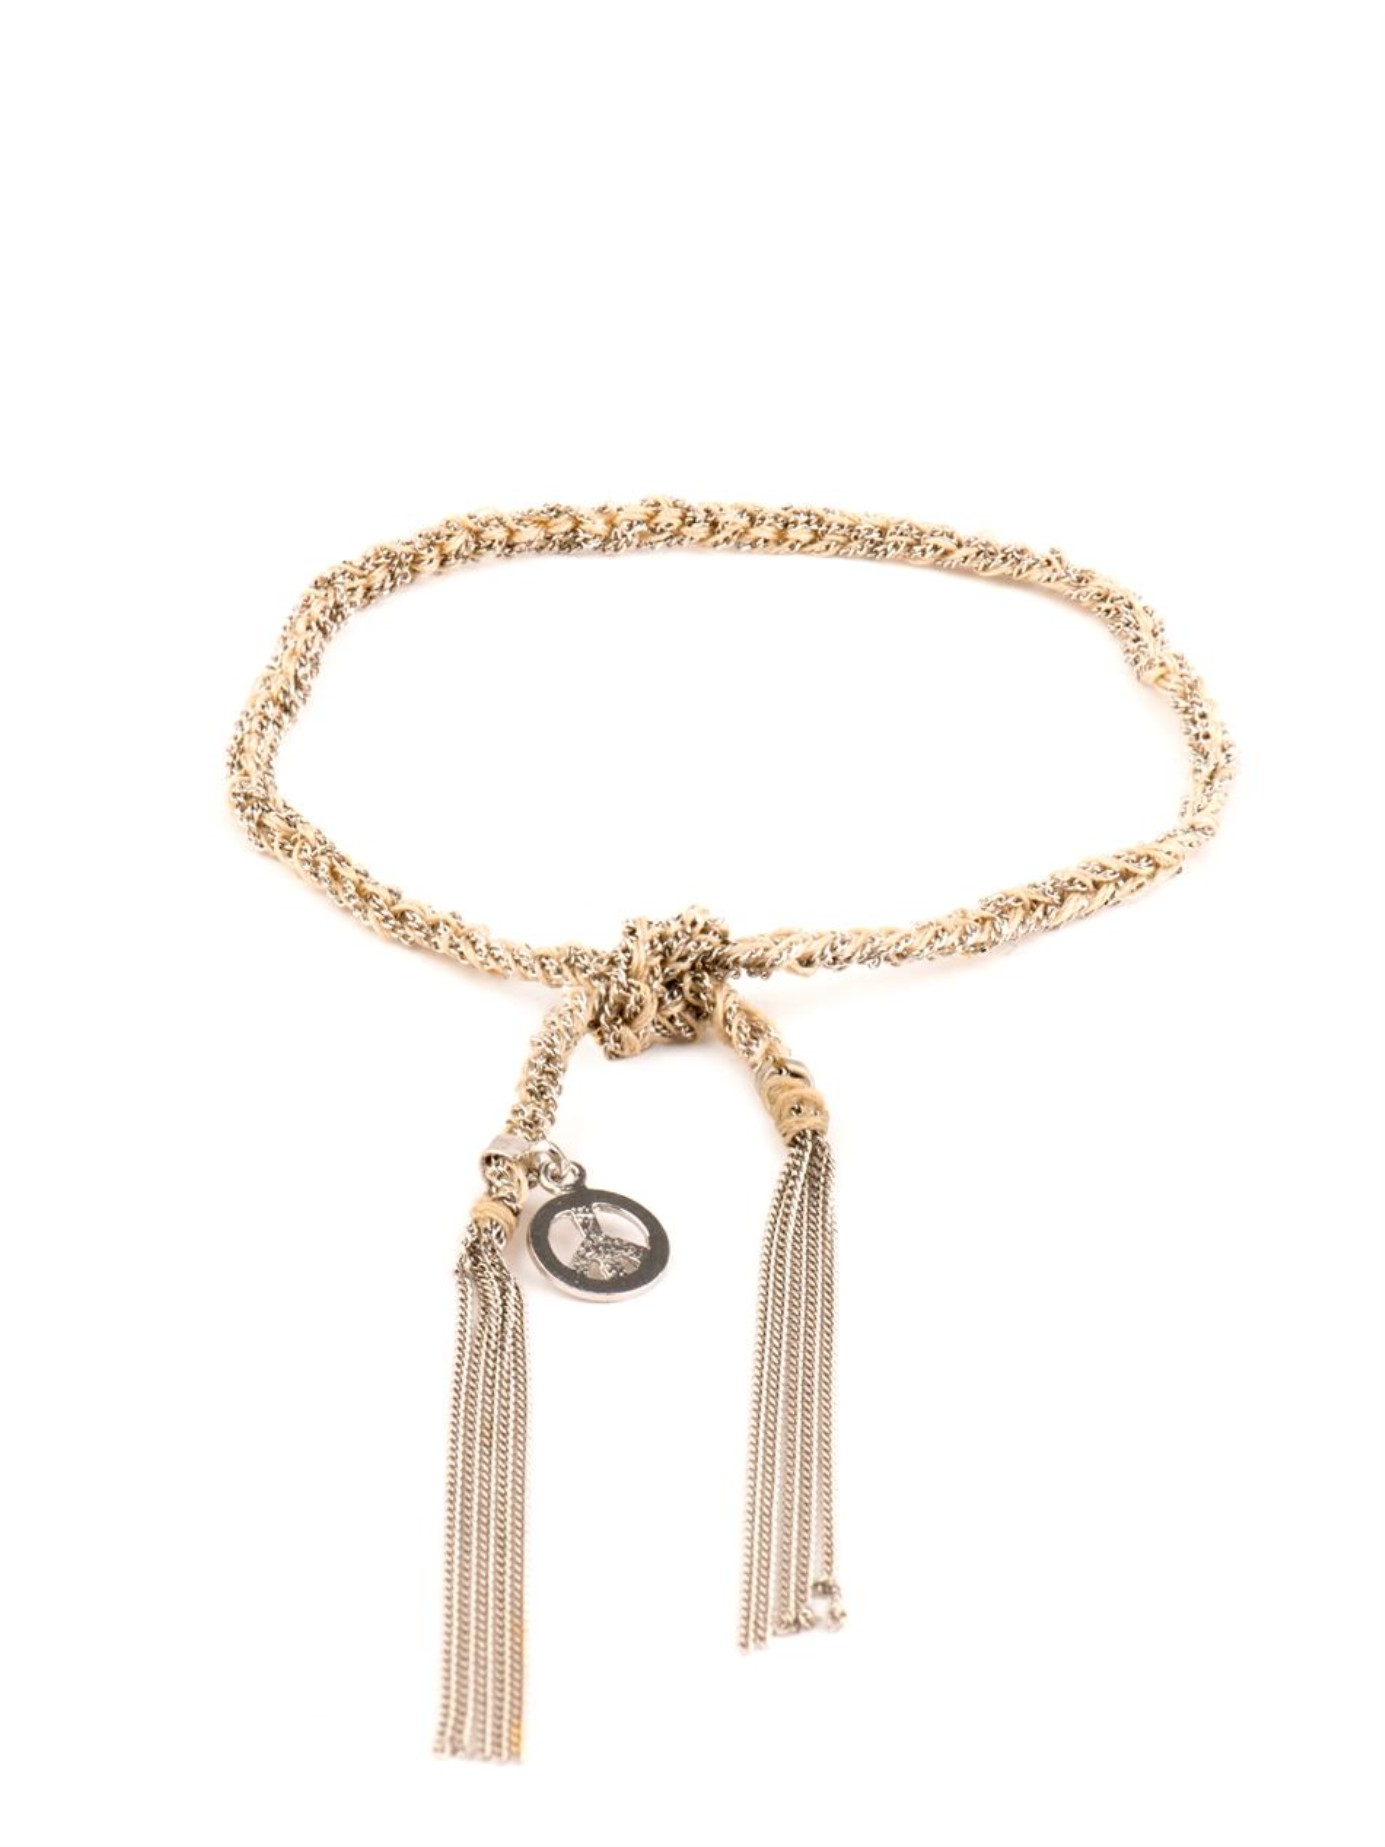 Carolina Bucci 18kt gold 9 Strand Lazy Lucky bracelet - Metallic